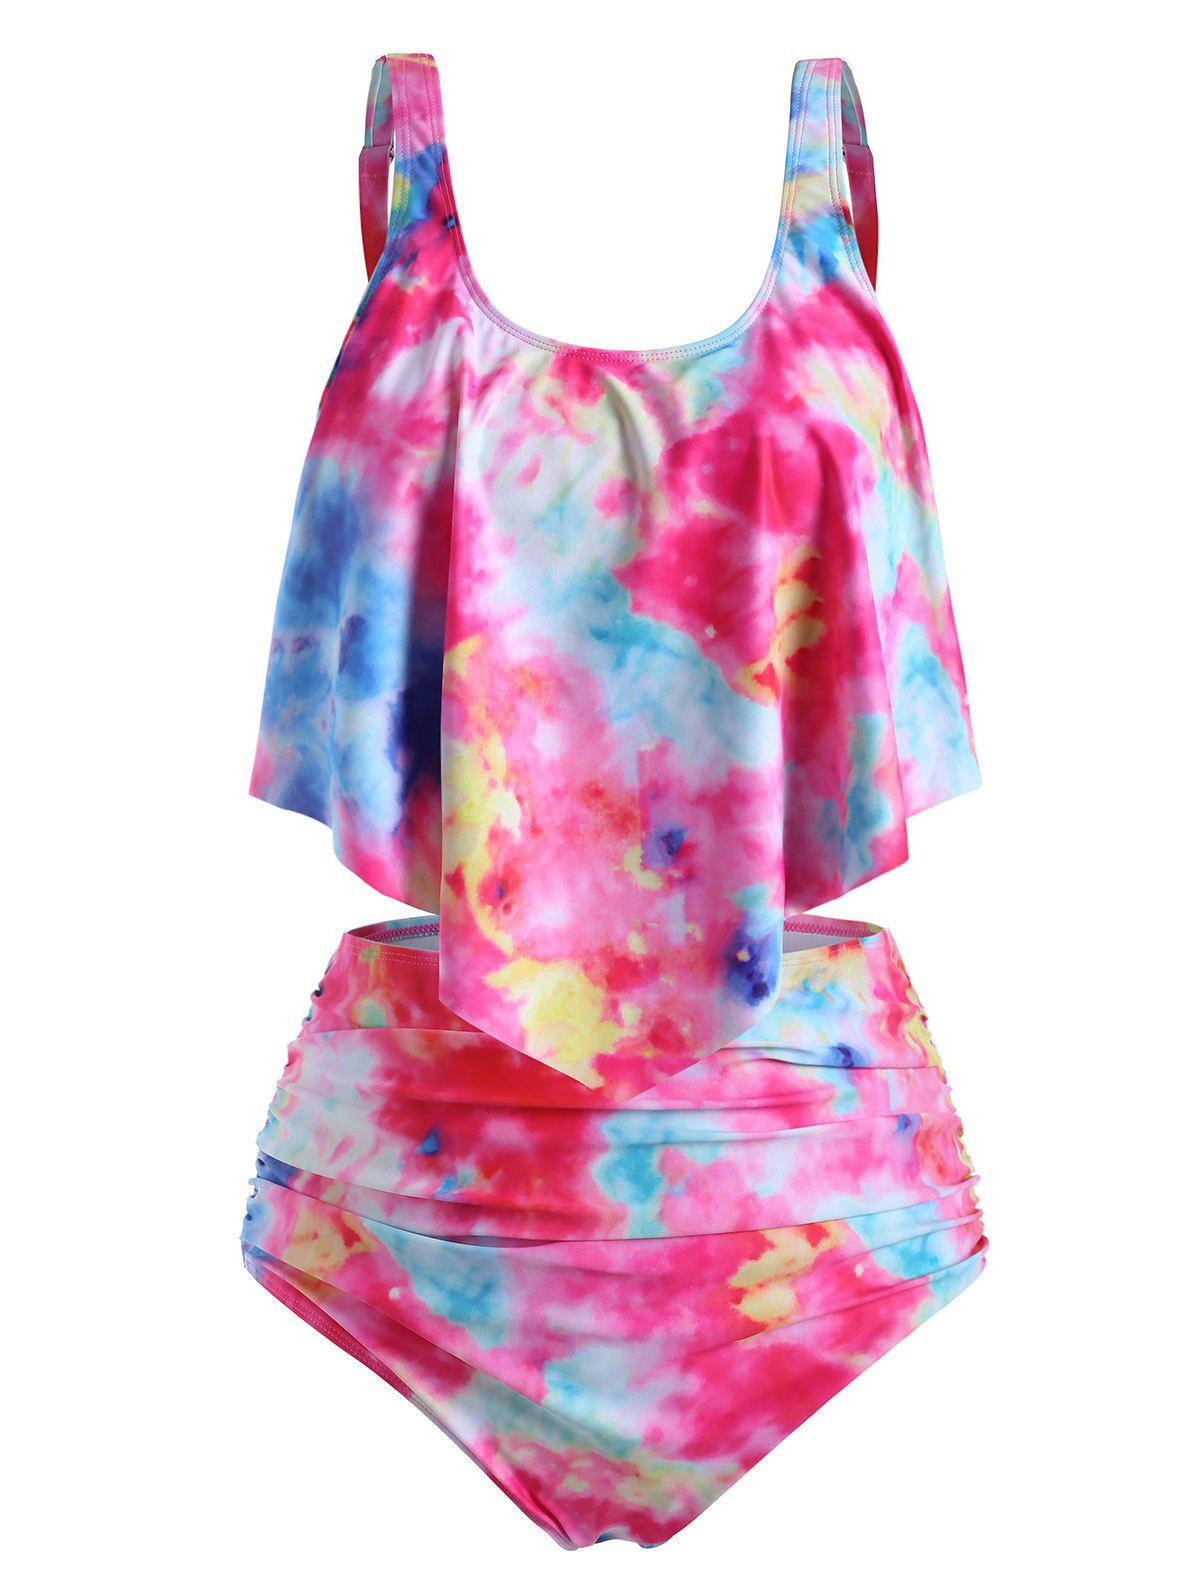 Plus Size Ruffled Tie Dye Ruched Tankini Swimsuit - multicolor I 3X